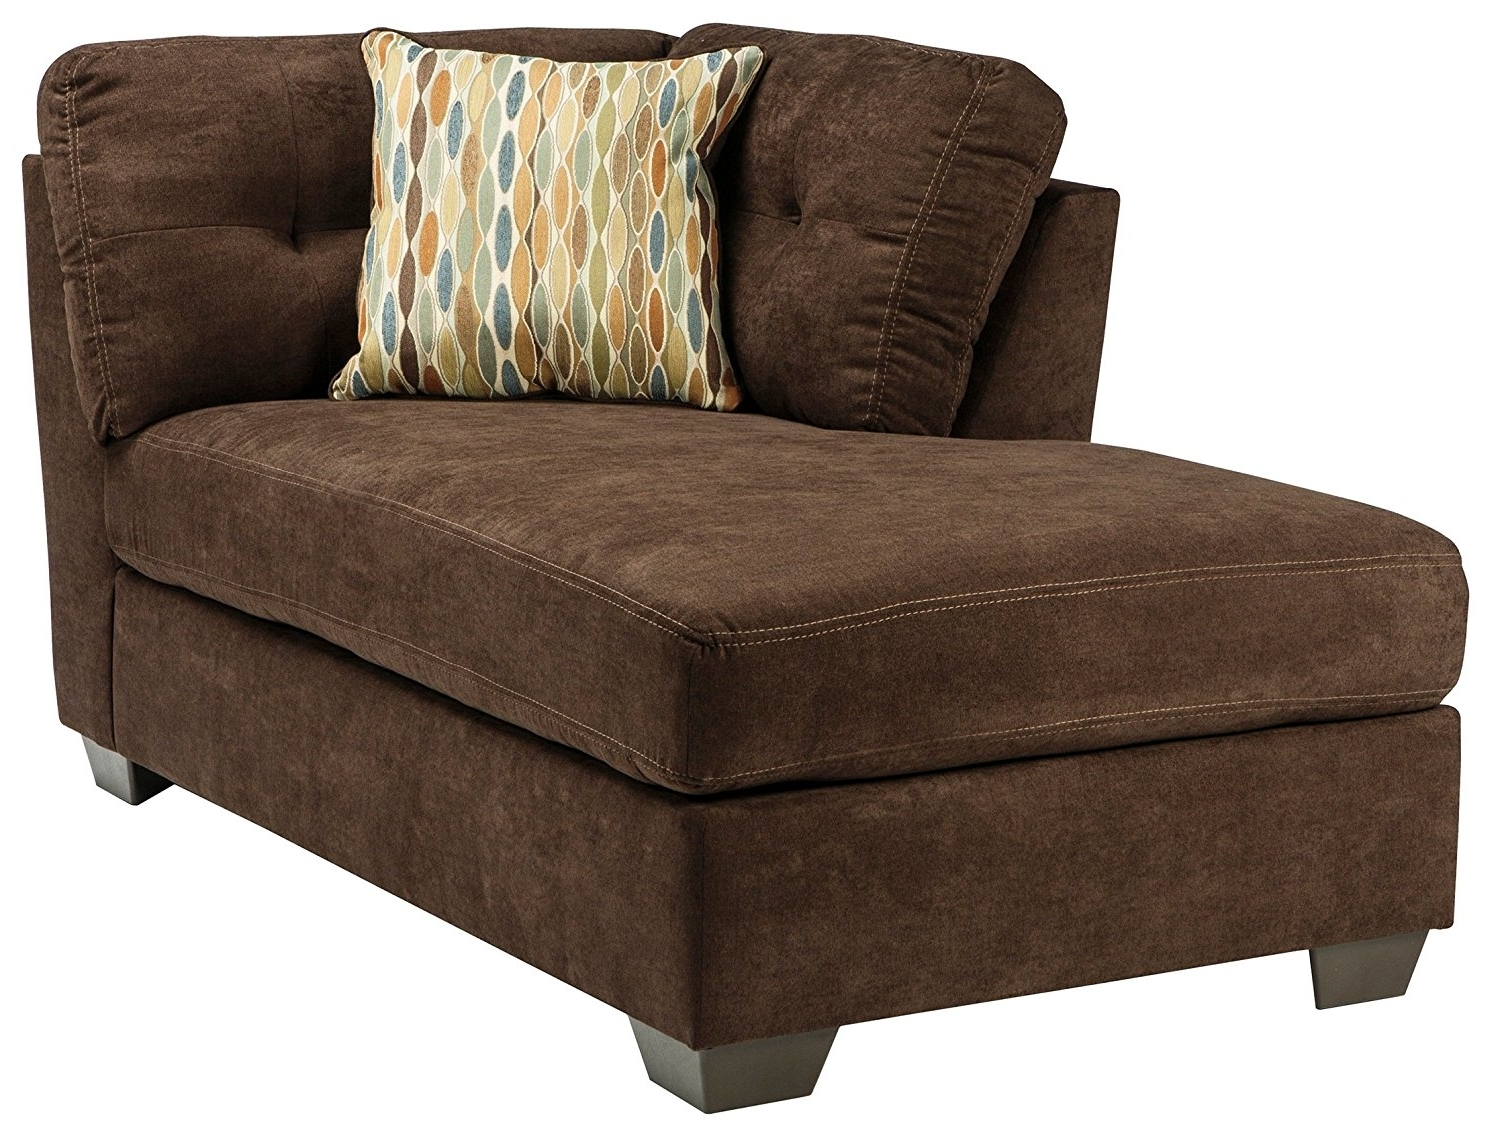 Ashley Furniture Chaise Lounge Chairs With Trendy Amazon: Ashley Delta City Left Corner Chaise Lounge In (View 5 of 15)